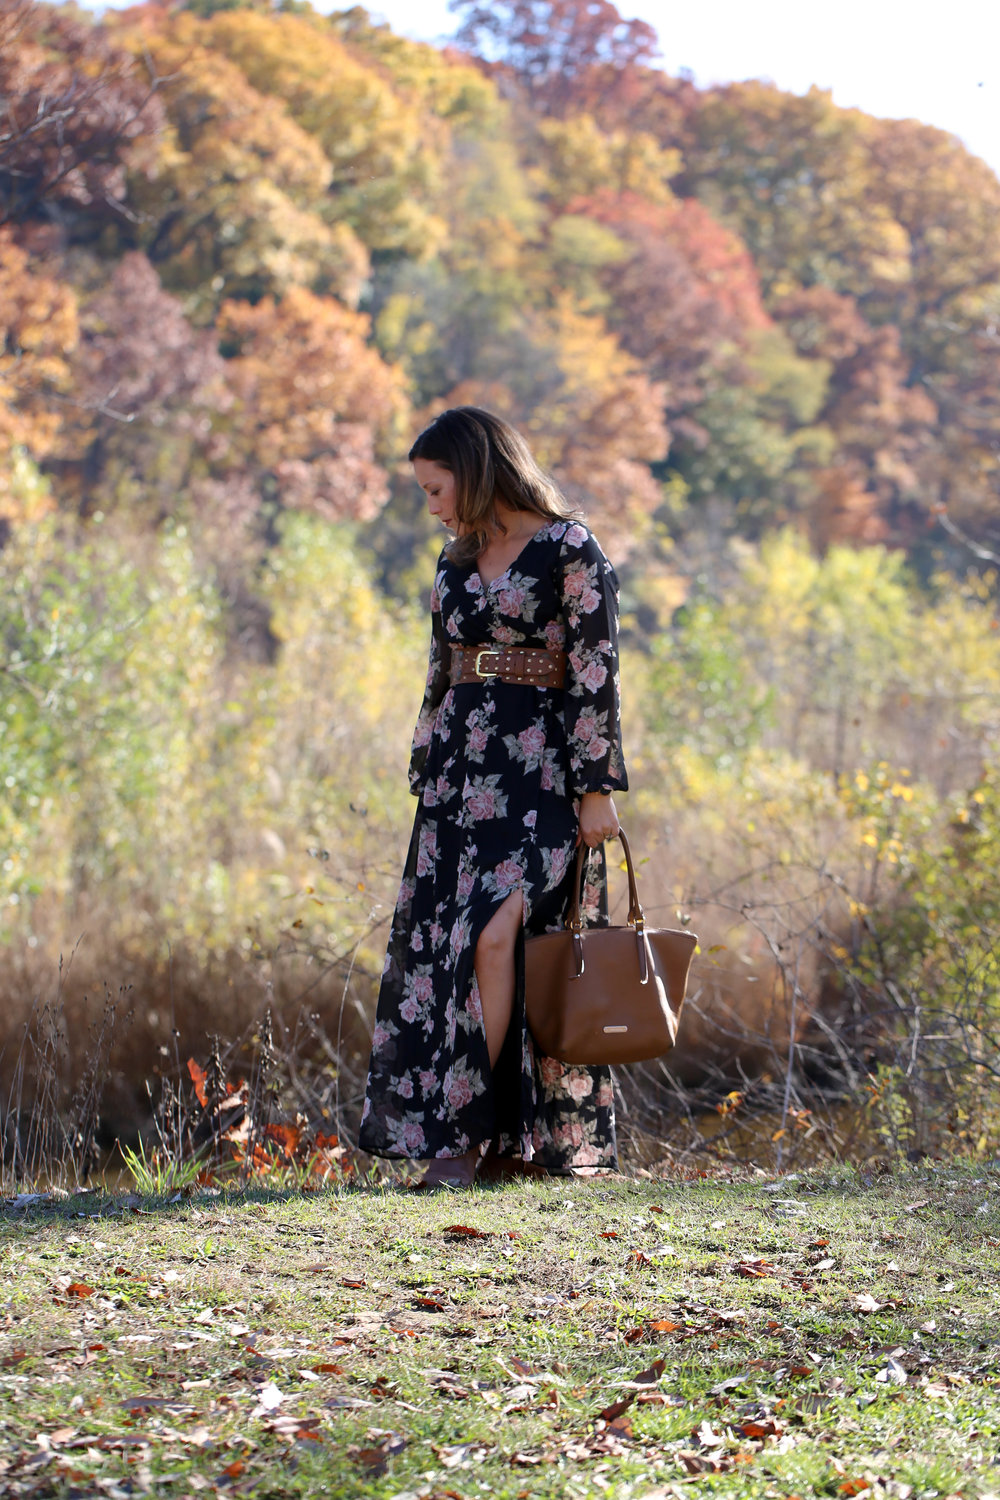 long sleeve fall floral maxi dress outfit, fall florals, fall fashion, maxi dress, floral dress, how to wear one piece multiple ways, accessorize with belts, autumn style, florals for women,